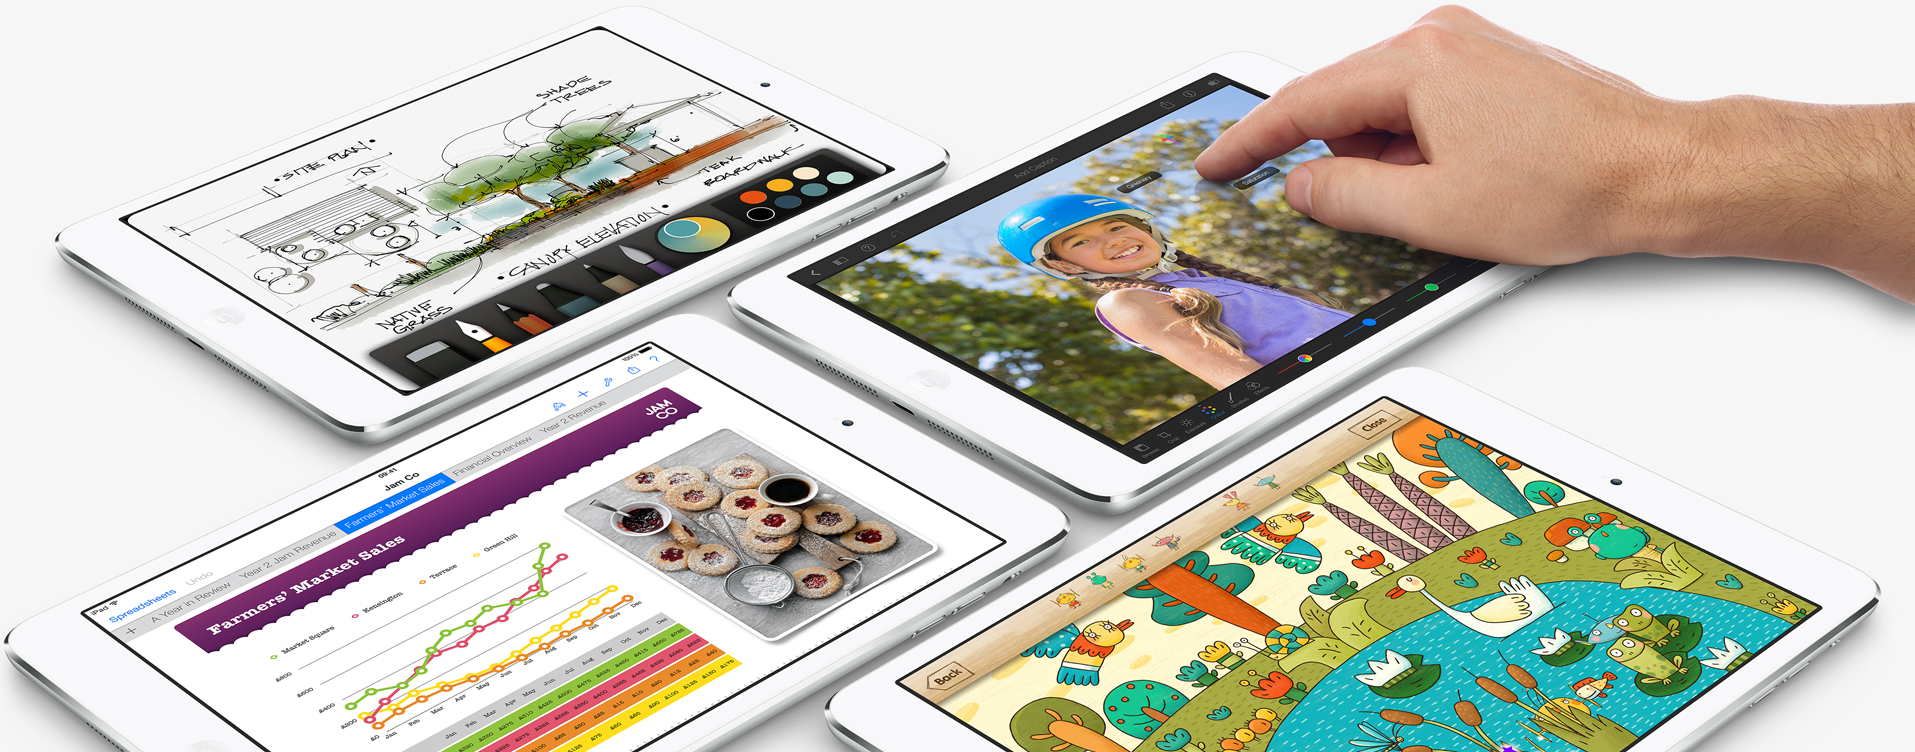 Apple's dinky iPad mini now sports a Retina display